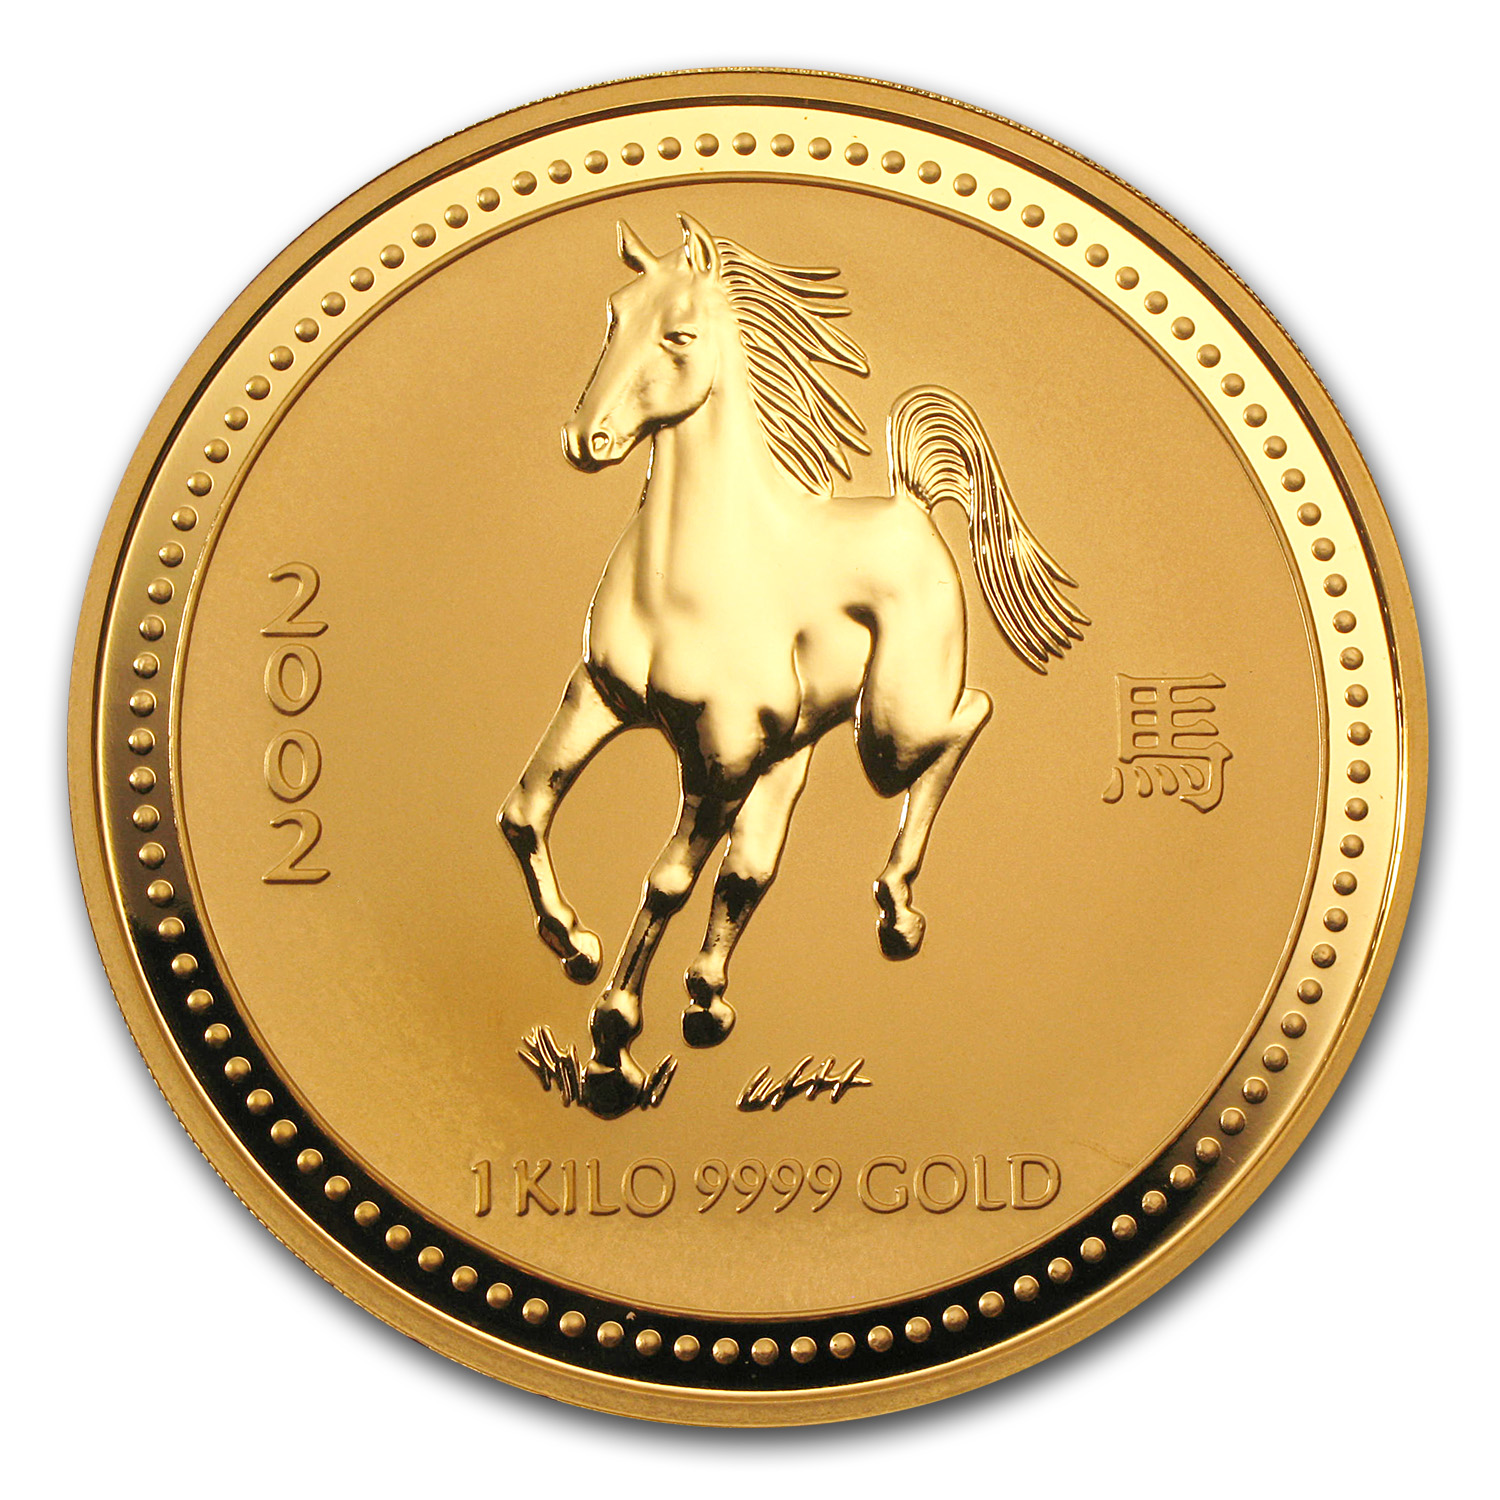 2002 1 kilo (32.15 oz) Gold Year of the Horse Lunar (Series I)